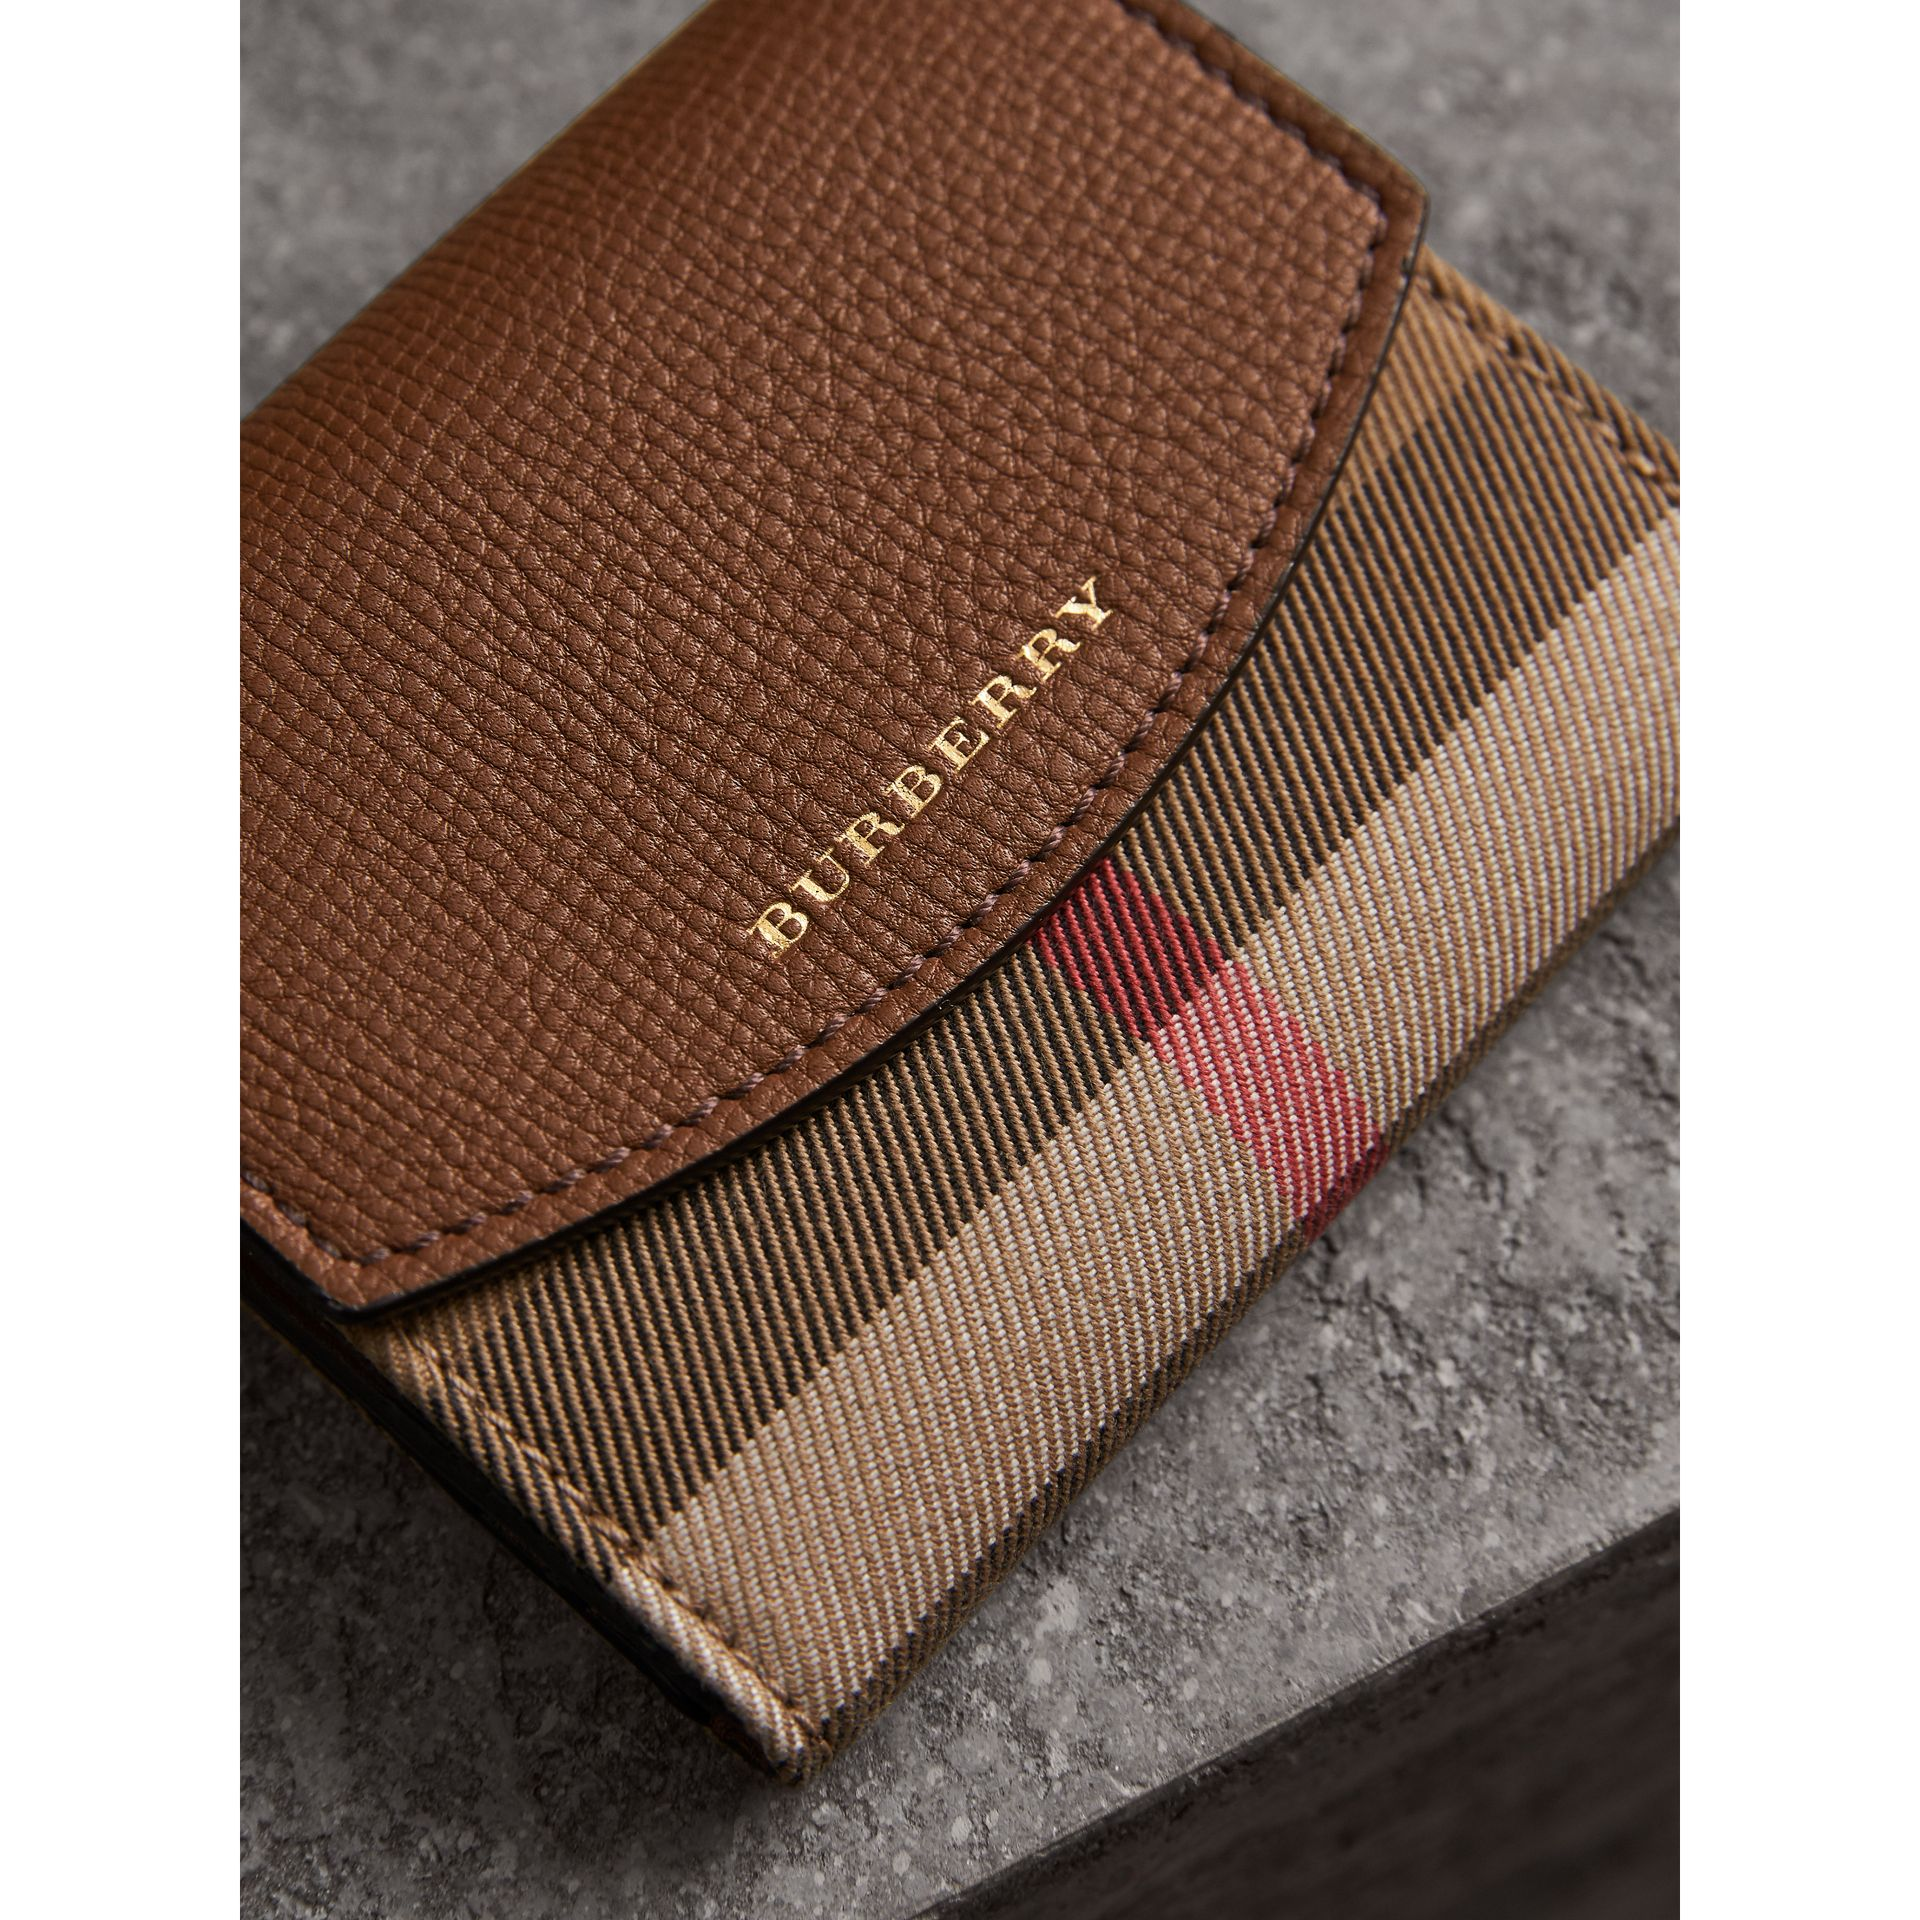 House Check and Leather Wallet in Tan - Women | Burberry United Kingdom - gallery image 1